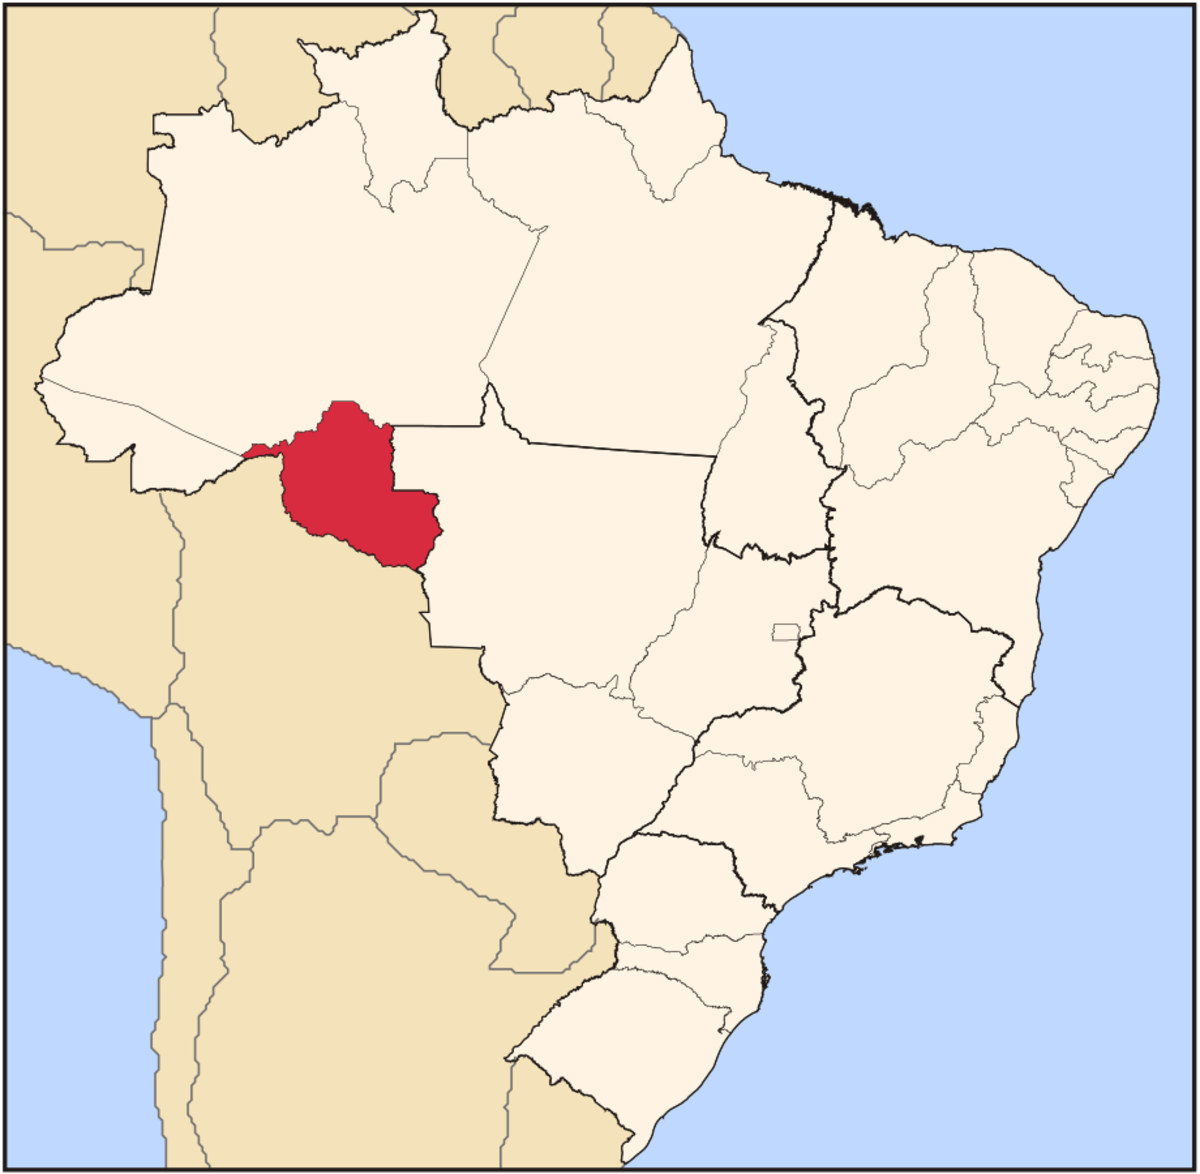 Rondonia is in red.